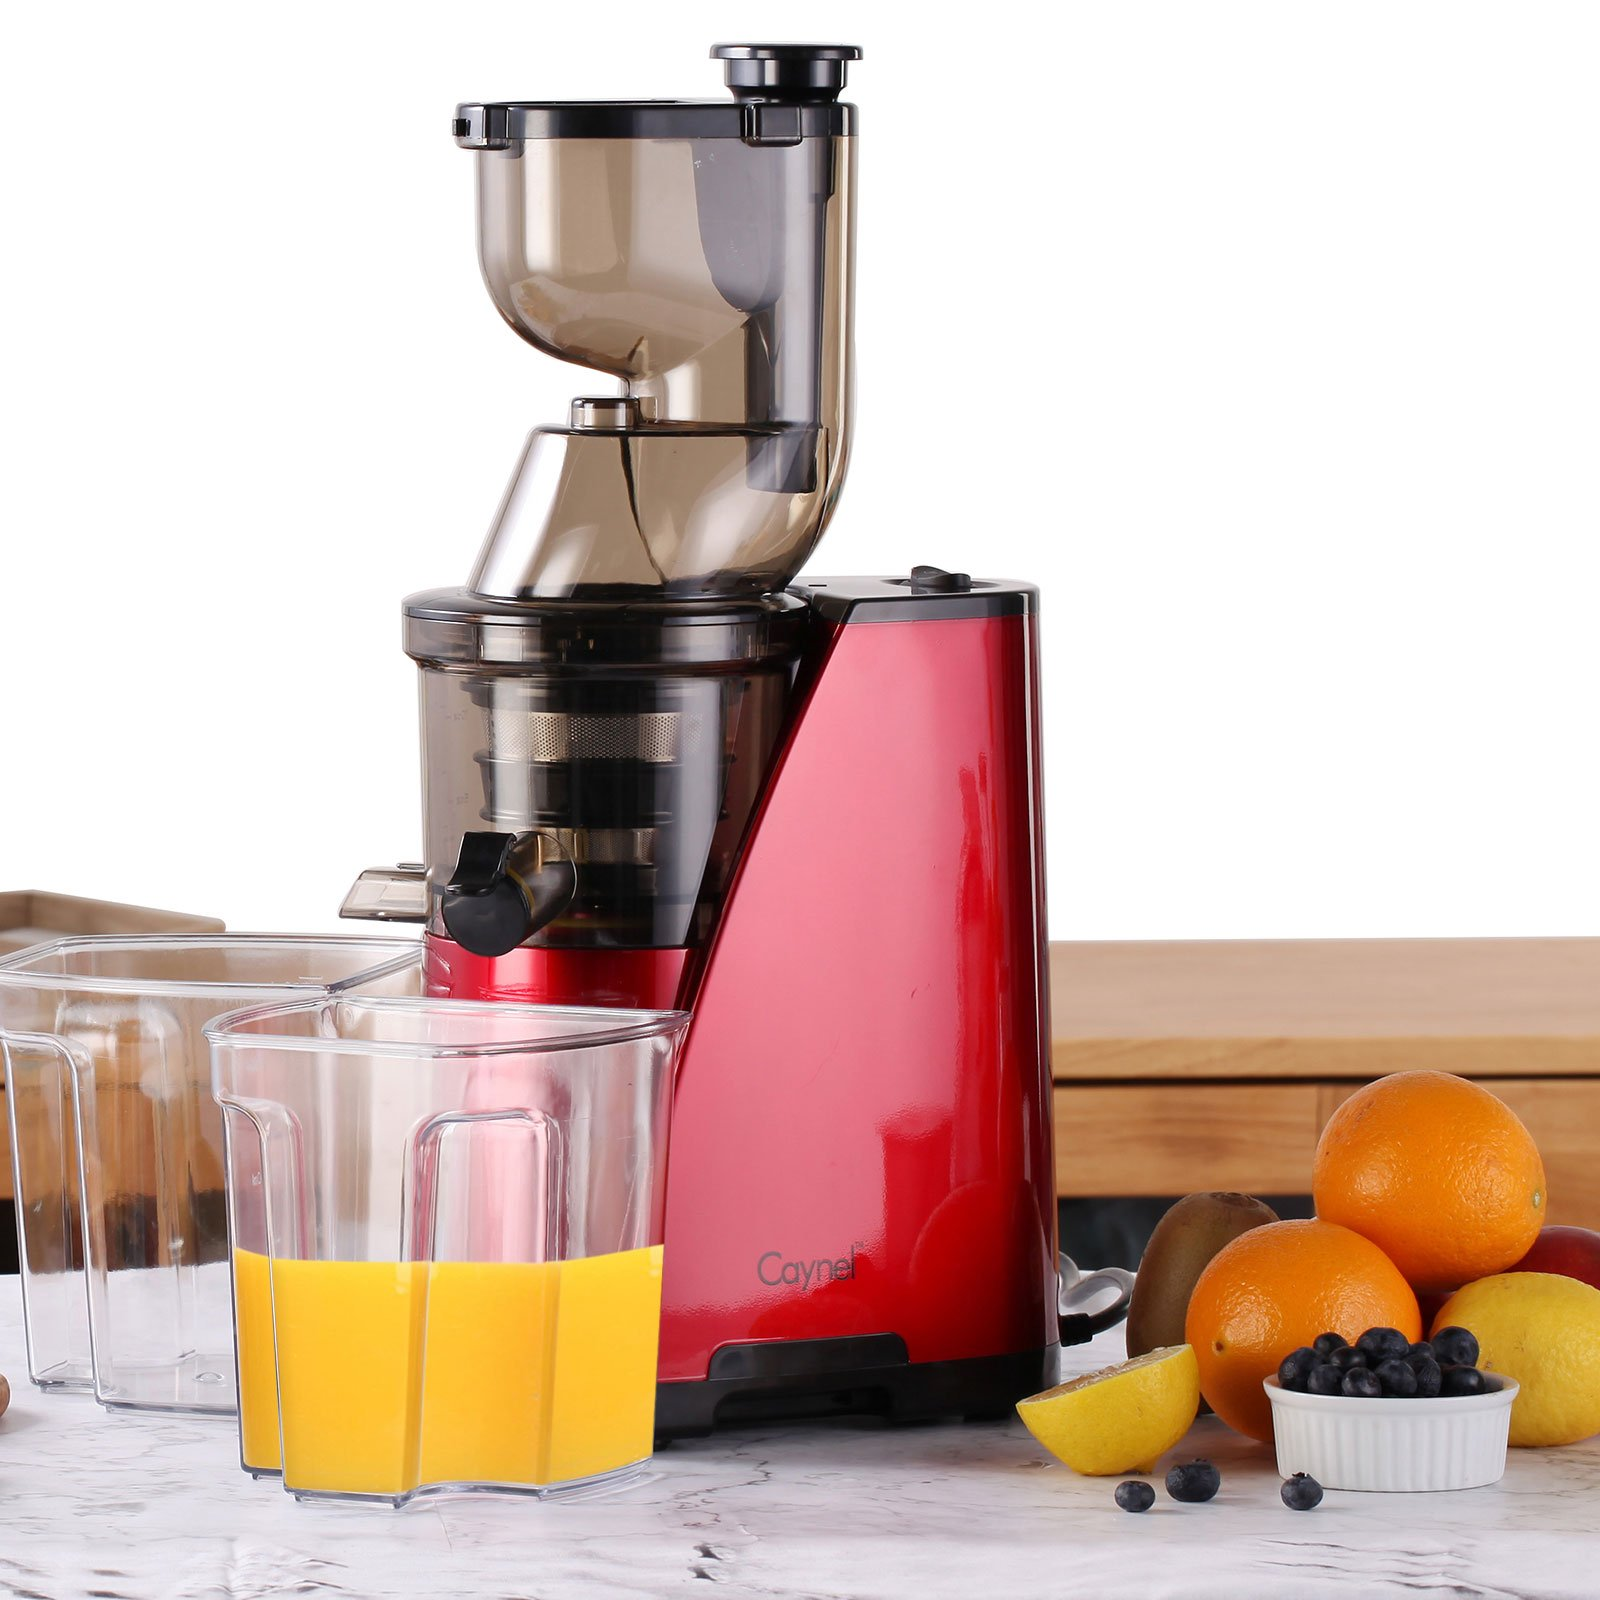 Caynel Whole Slow Masticating Cold Press Juicer Extractor Quiet Durable Motor, 3'' Big Mouth Wide Chute with Juice Jug, Brush and Extra Juice Bottle, Easy Cleaning Vertical Juicing Machine BPA Free